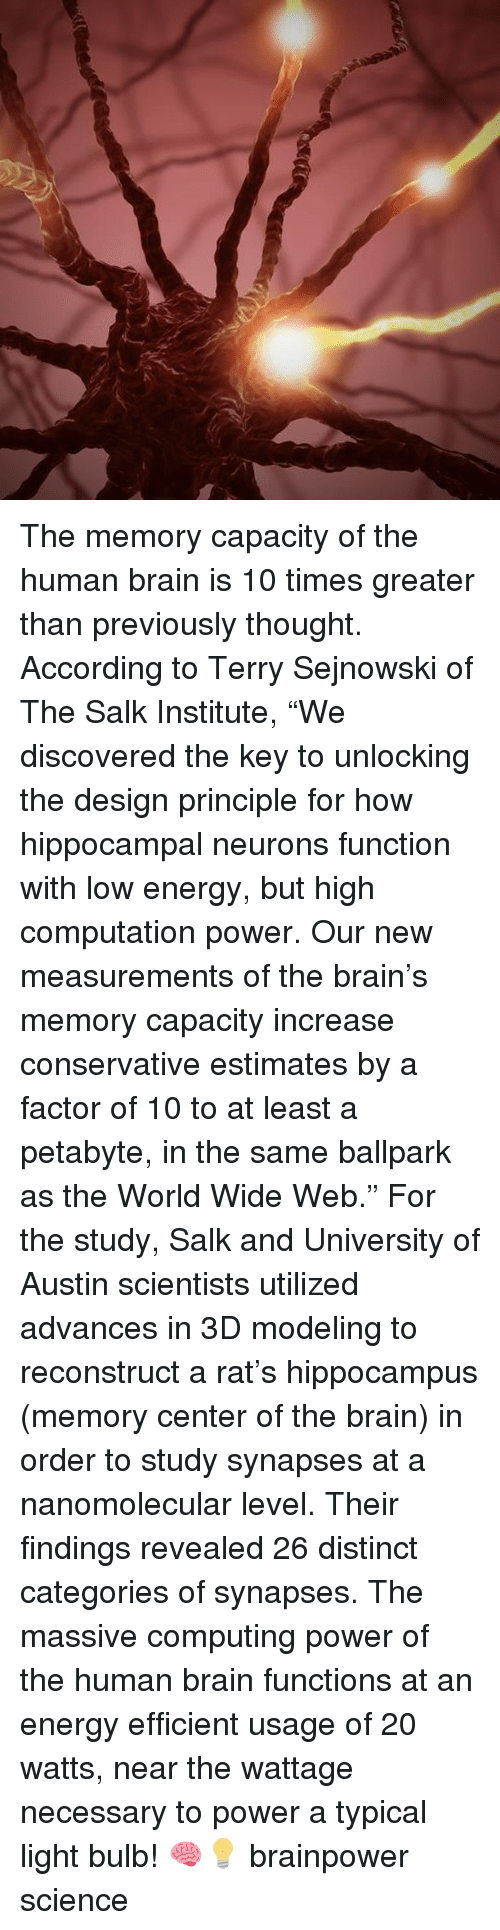 """Energy, Memes, and Brain: The memory capacity of the human brain is 10 times greater than previously thought. According to Terry Sejnowski of The Salk Institute, """"We discovered the key to unlocking the design principle for how hippocampal neurons function with low energy, but high computation power. Our new measurements of the brain's memory capacity increase conservative estimates by a factor of 10 to at least a petabyte, in the same ballpark as the World Wide Web."""" For the study, Salk and University of Austin scientists utilized advances in 3D modeling to reconstruct a rat's hippocampus (memory center of the brain) in order to study synapses at a nanomolecular level. Their findings revealed 26 distinct categories of synapses. The massive computing power of the human brain functions at an energy efficient usage of 20 watts, near the wattage necessary to power a typical light bulb! 🧠💡 brainpower science"""